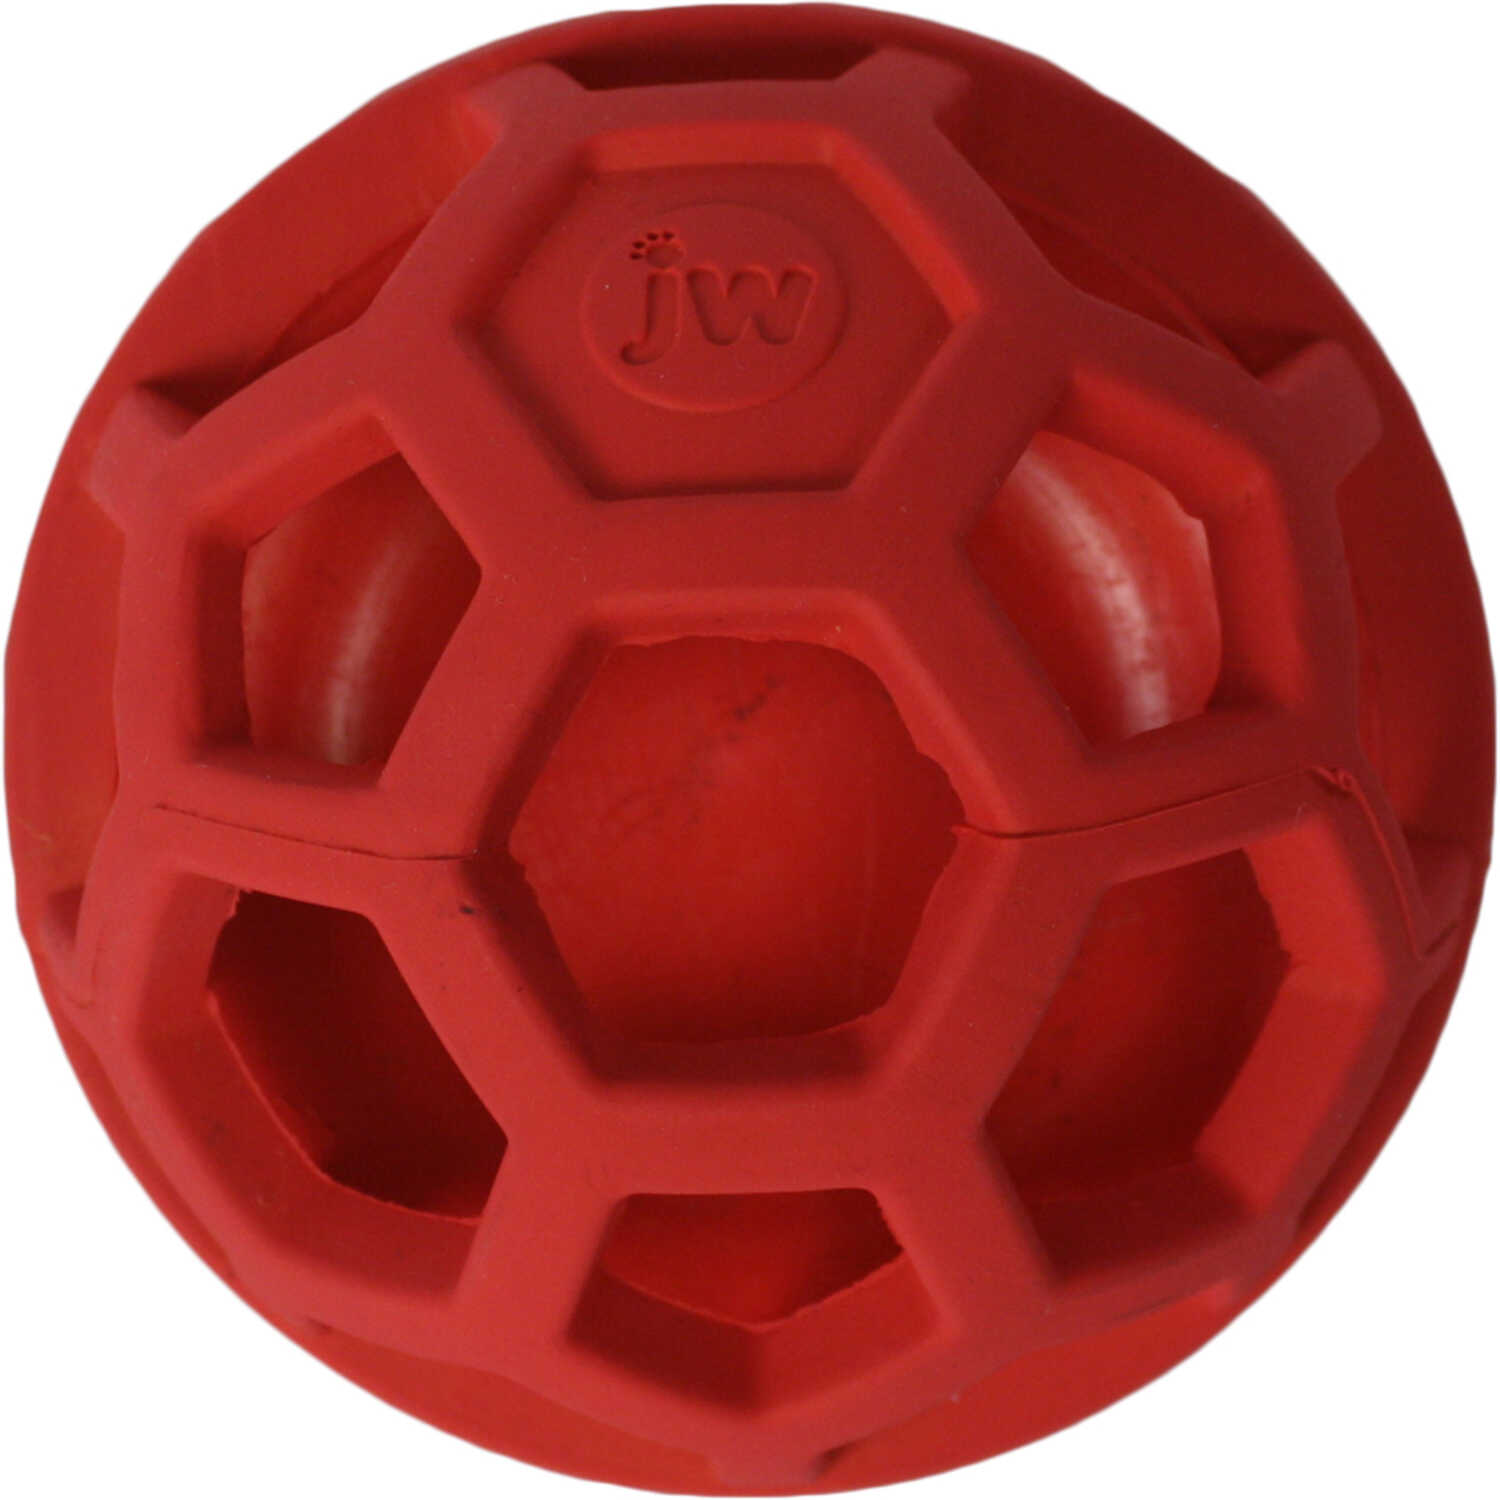 JW Pet  Red  Rubber  Flexible Toy/Treat Dispenser  Medium  Treat N Squeak Ball